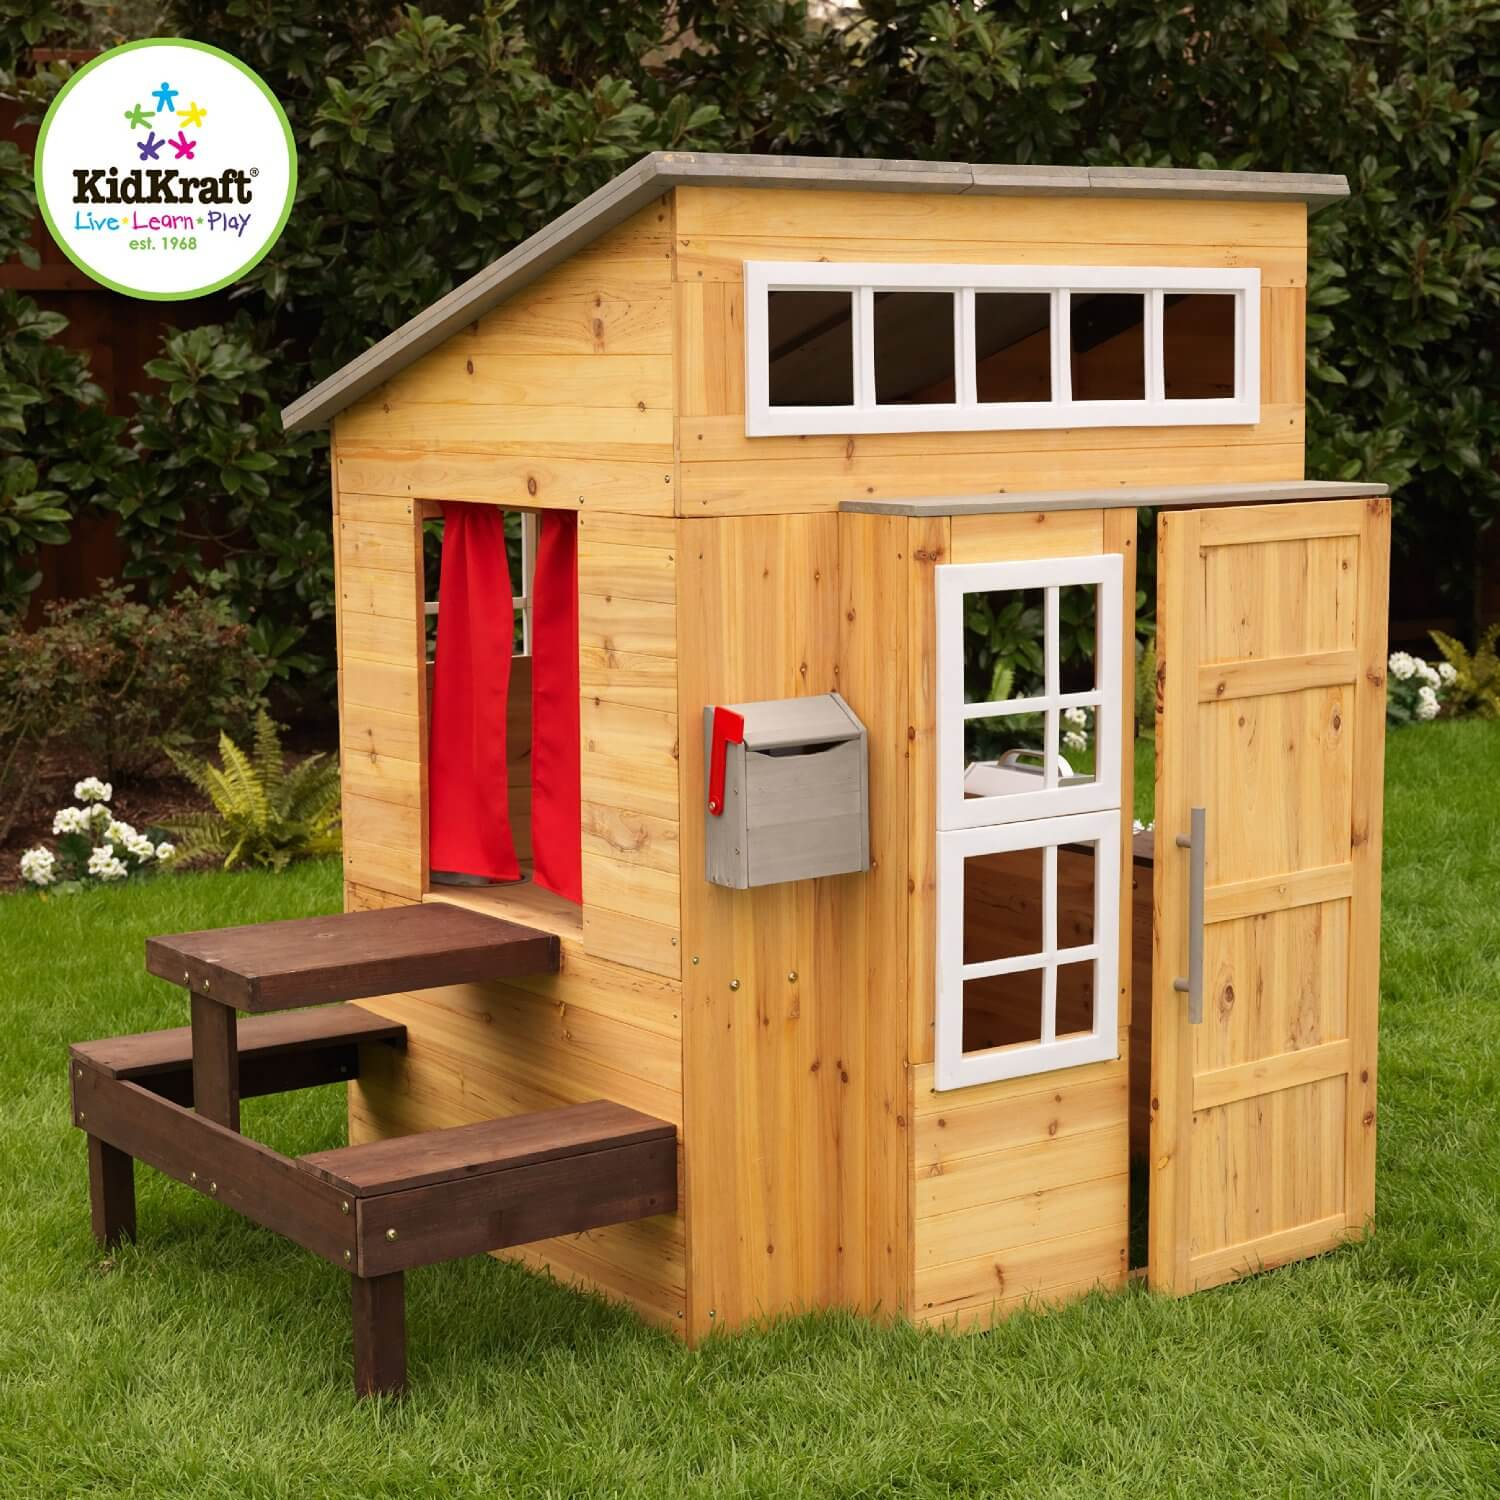 How to Build a Playhouse with Wooden Pallets (Step-by-Step Tutorial)